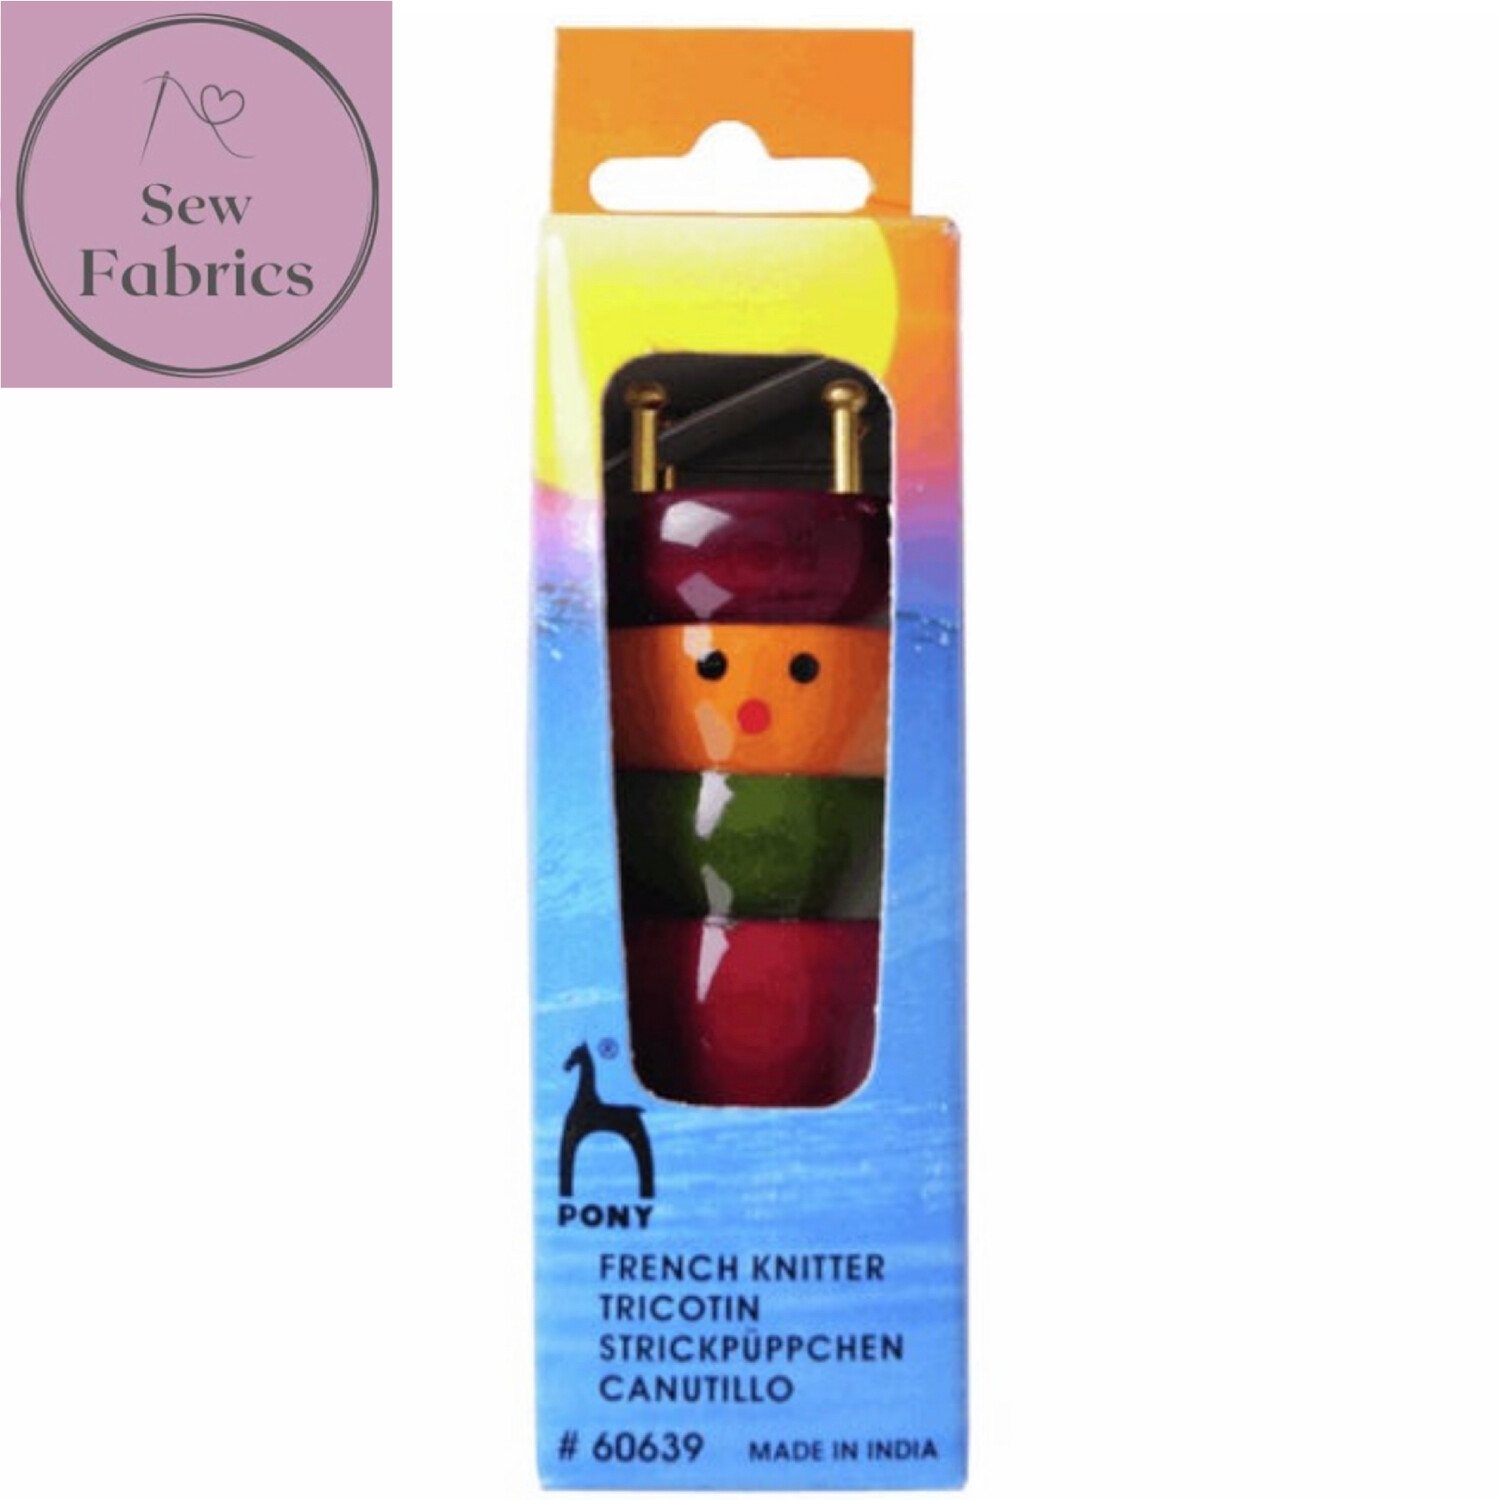 Pony Painted French Knitting Dolly - Assorted colours, may vary